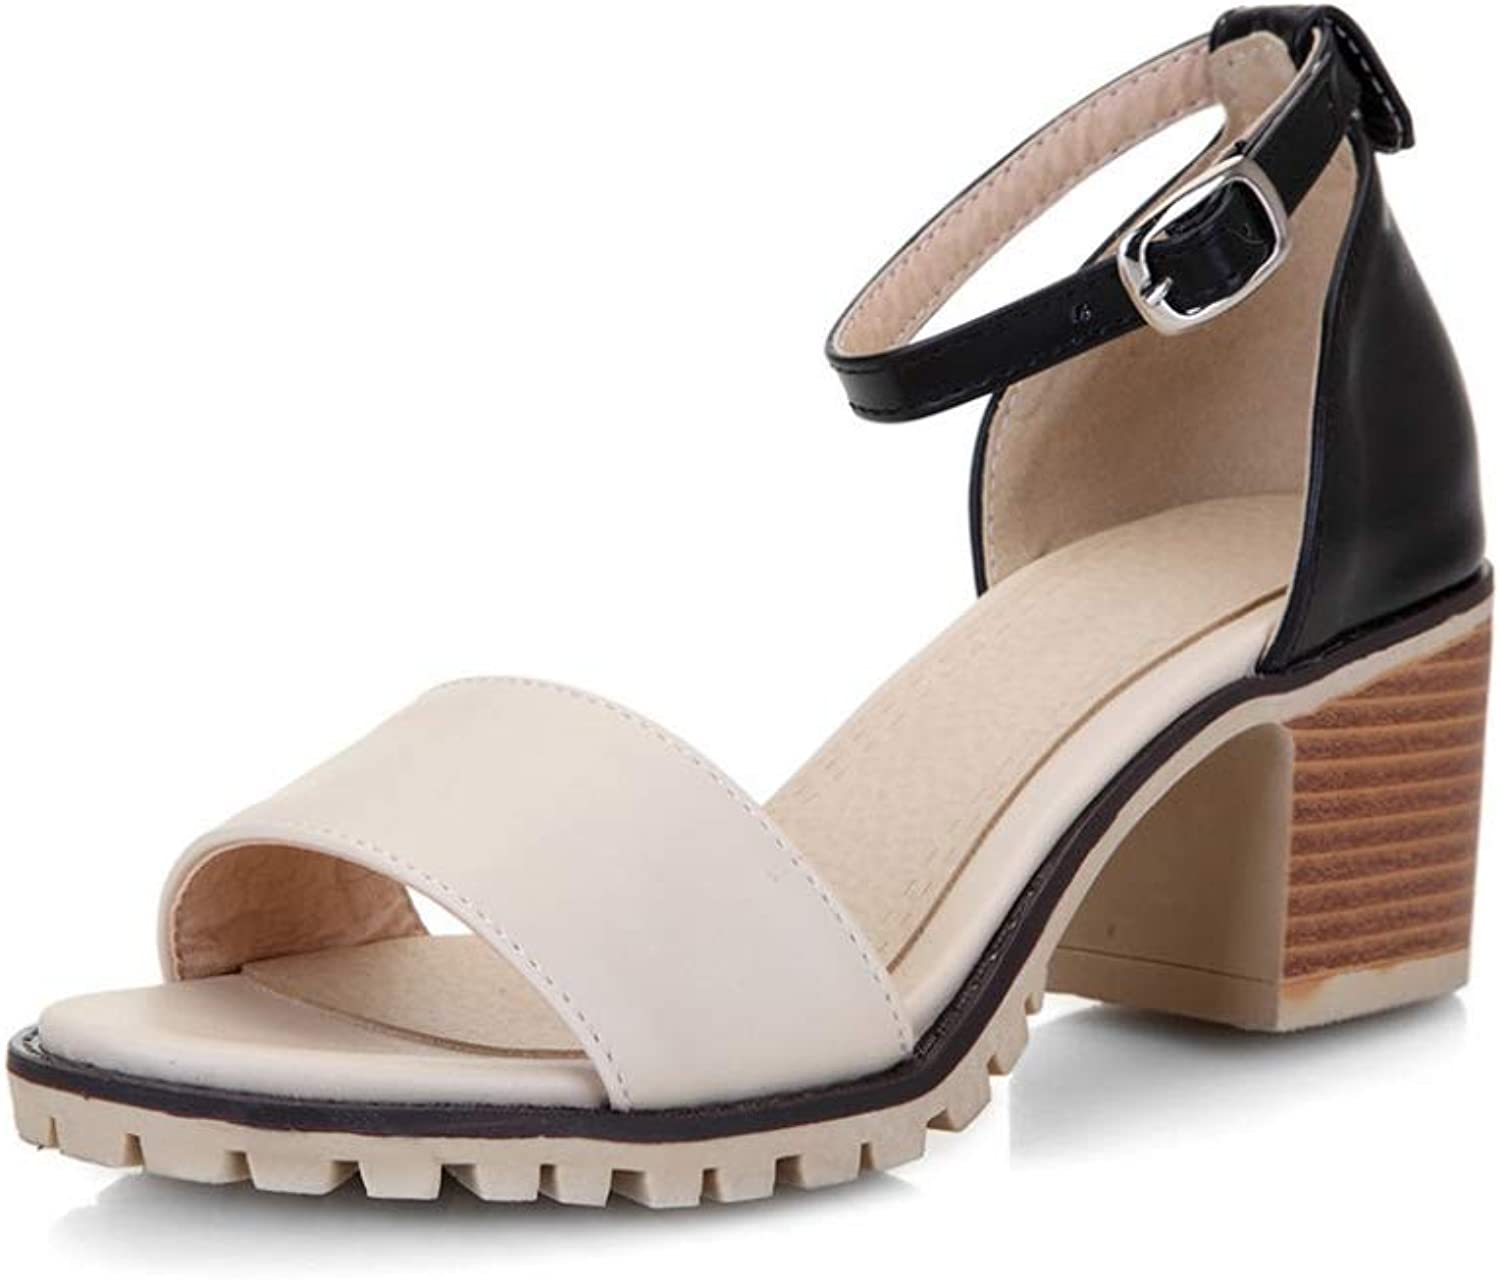 T-JULY Women Sandals Spring Summer Classic BuckleStrap Fashion Splice color Med Heels shoes